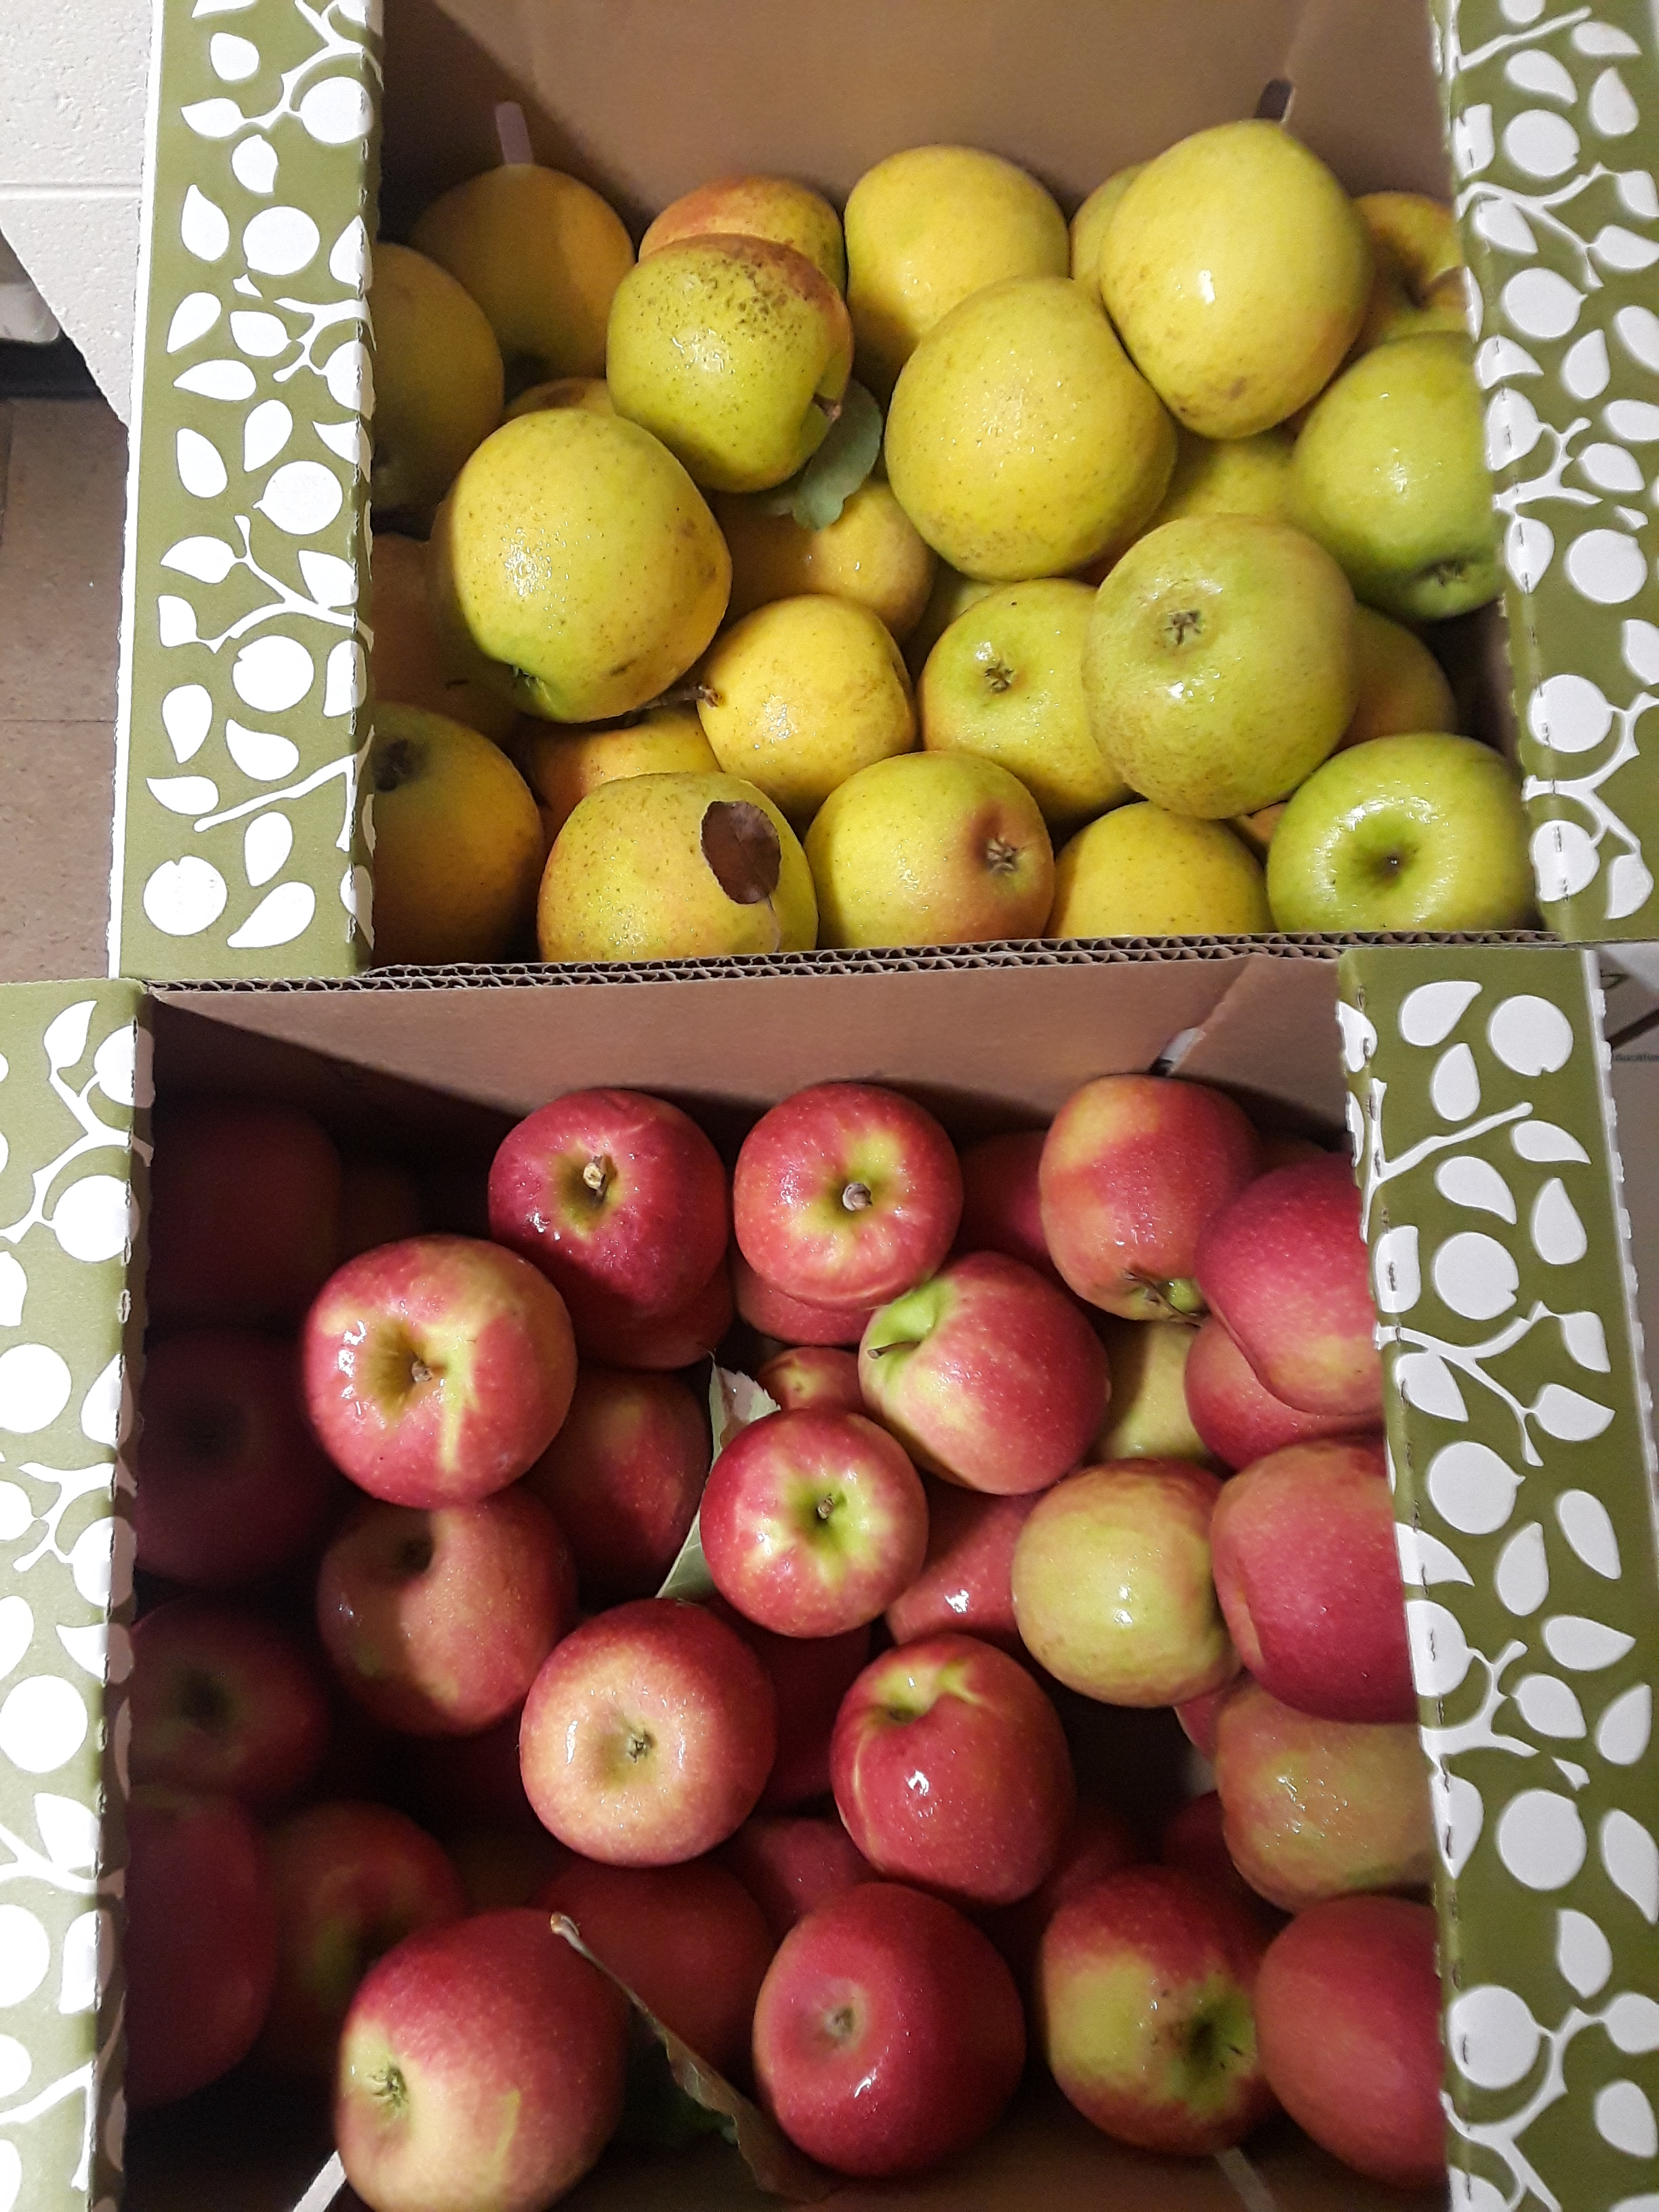 JMT US_4_PA Apples_CA storage.jpg